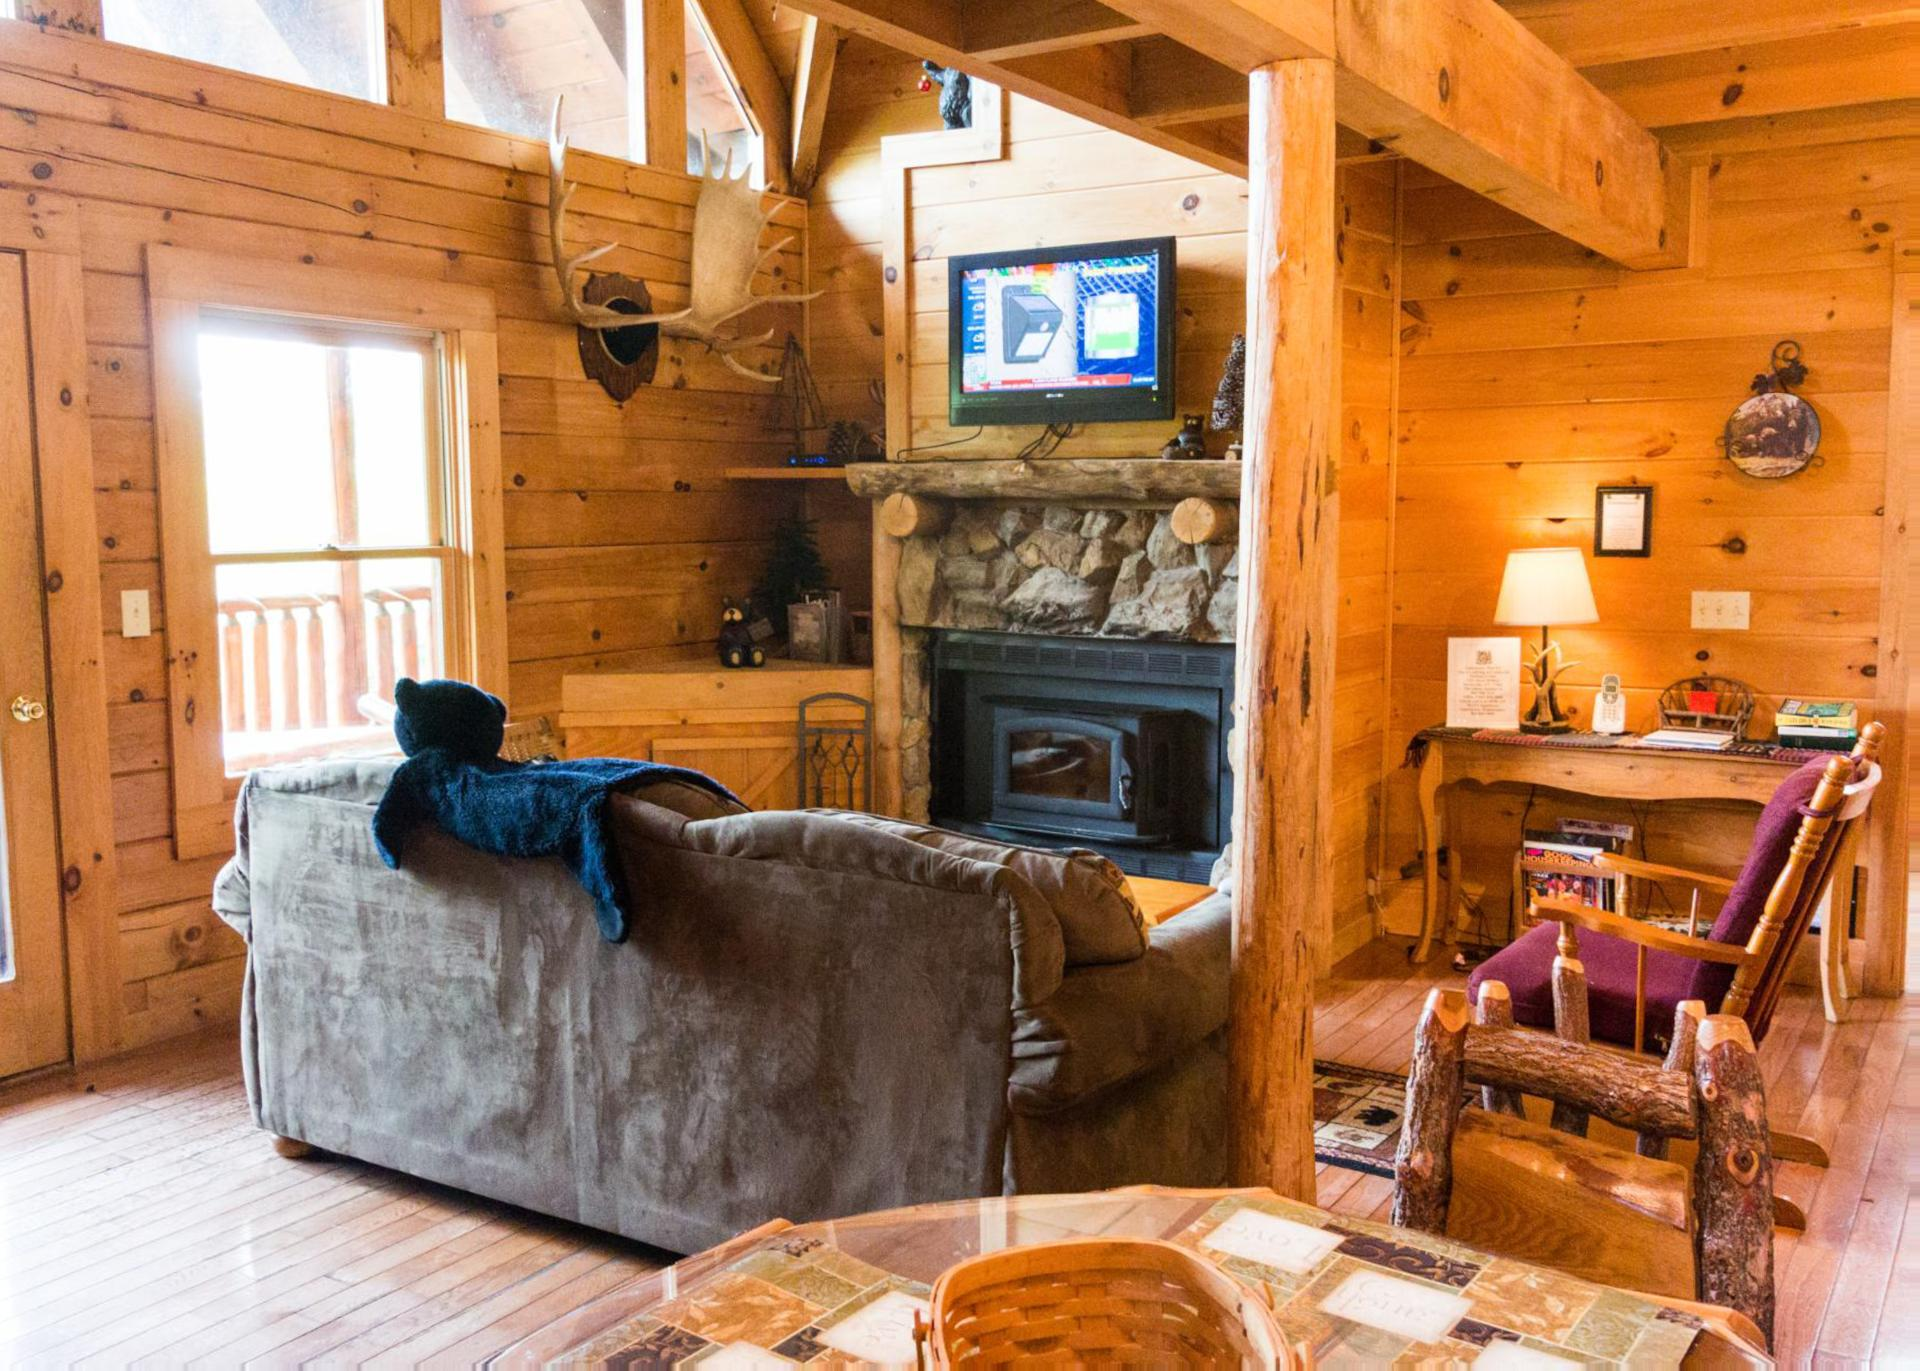 tn cheap rental interior hot s wisconsin own homes louisiana in tubs vacation to colorado rent with gatlinburg cabins